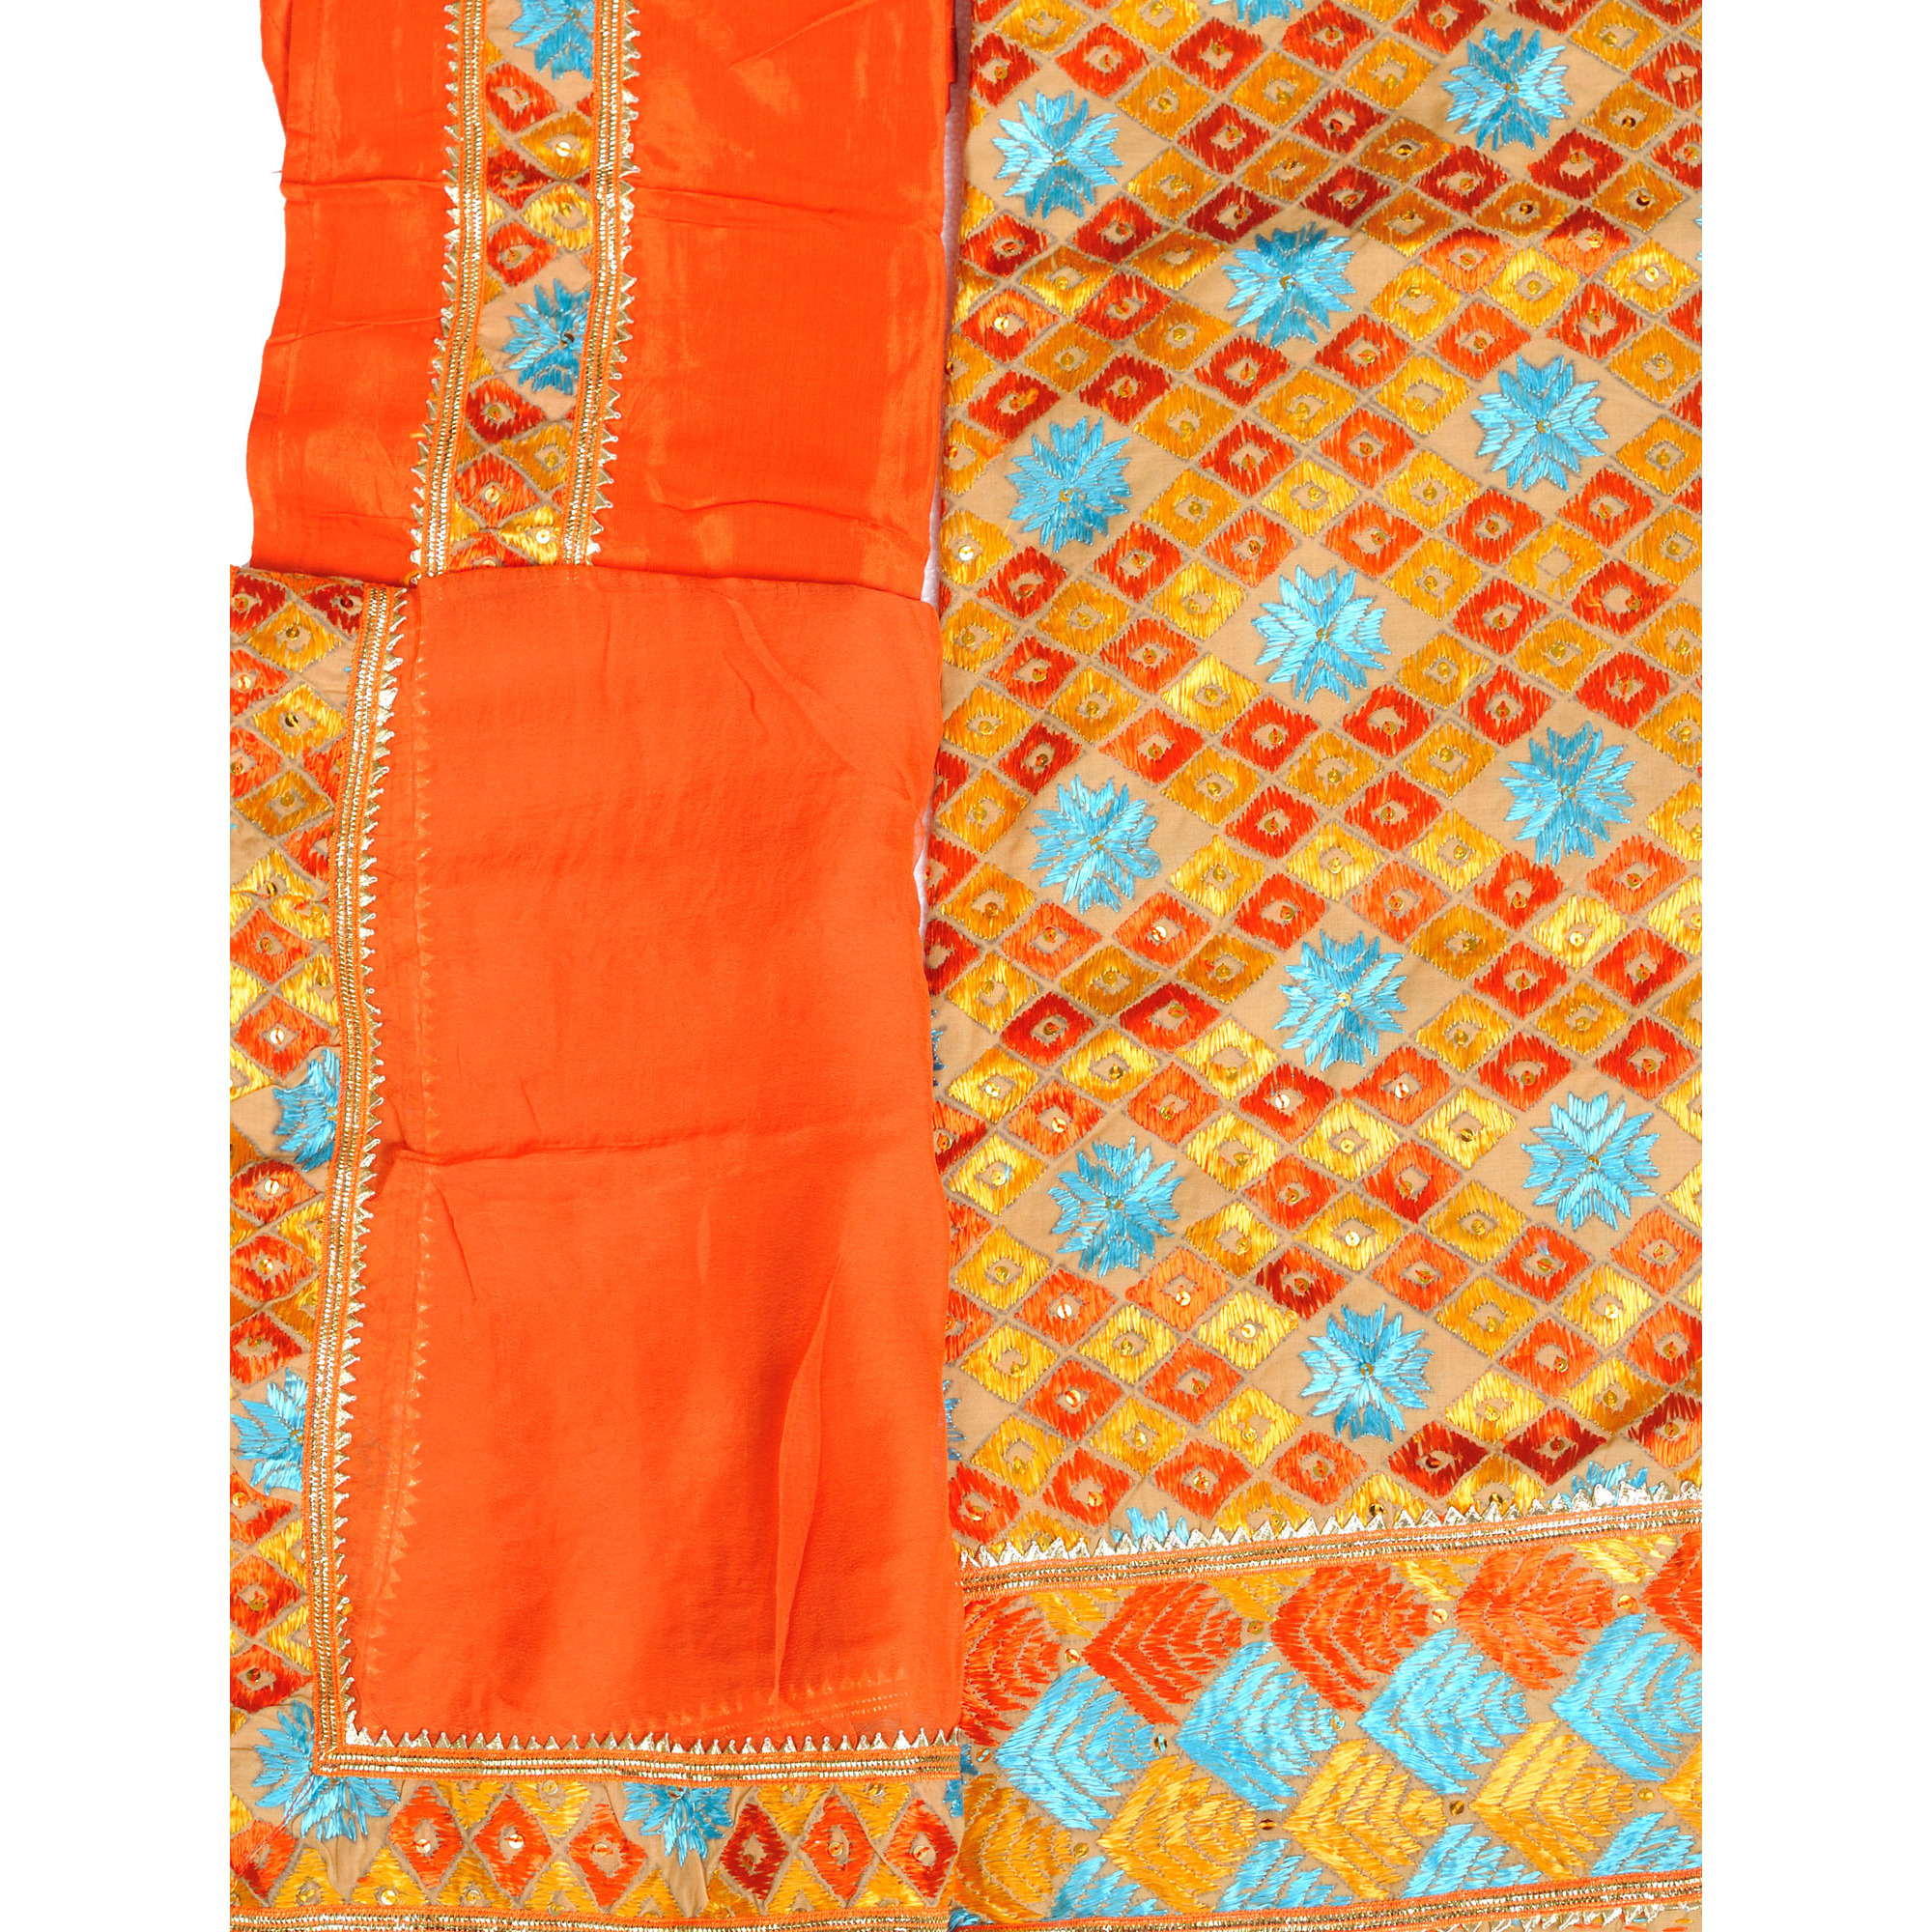 Beige and Orange Phulkari-Embroidered Salwar Kameez Fabric From Punjab with Sequins